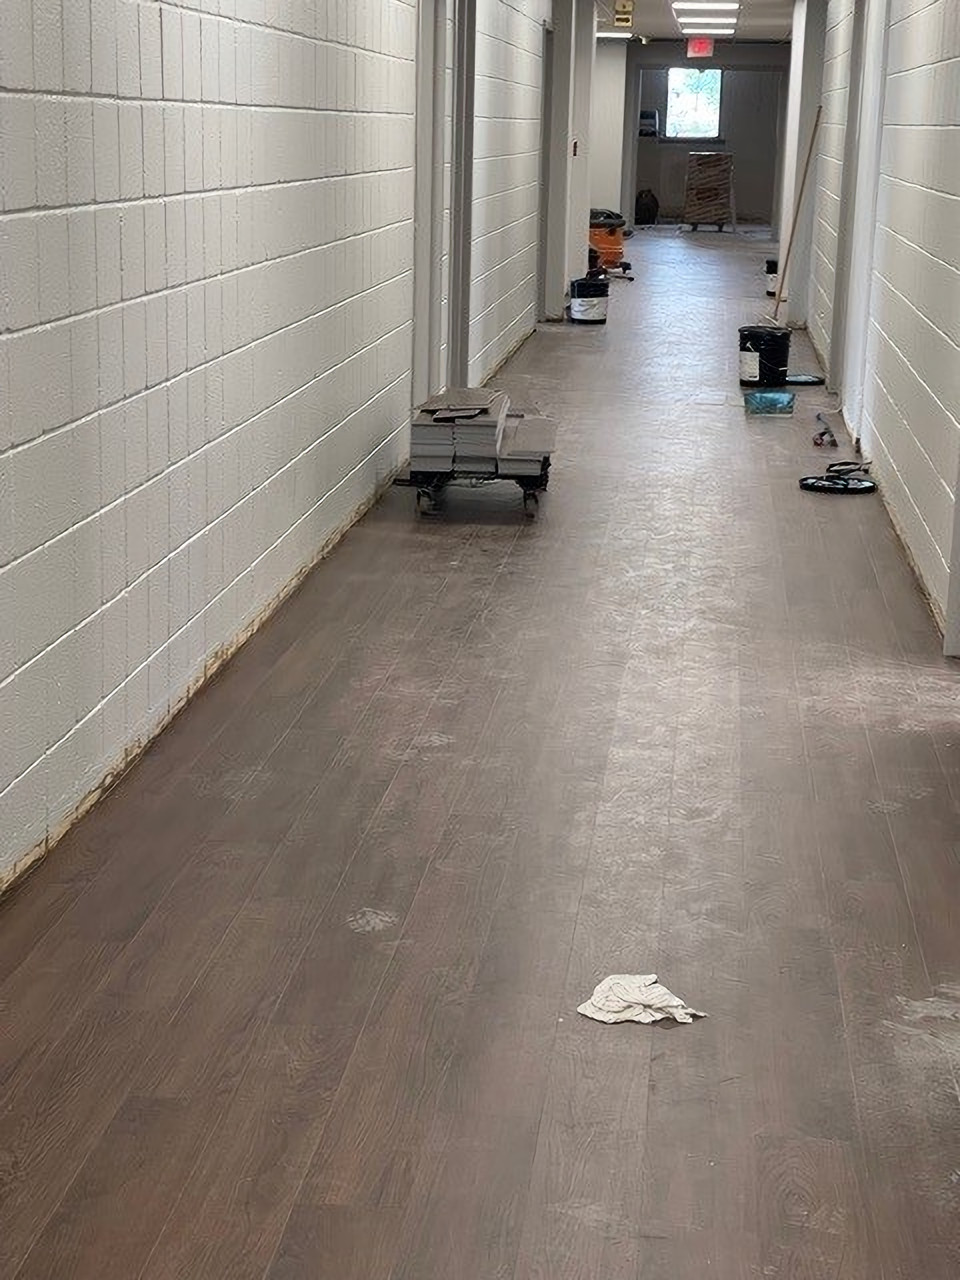 and a new floor down the hall too!